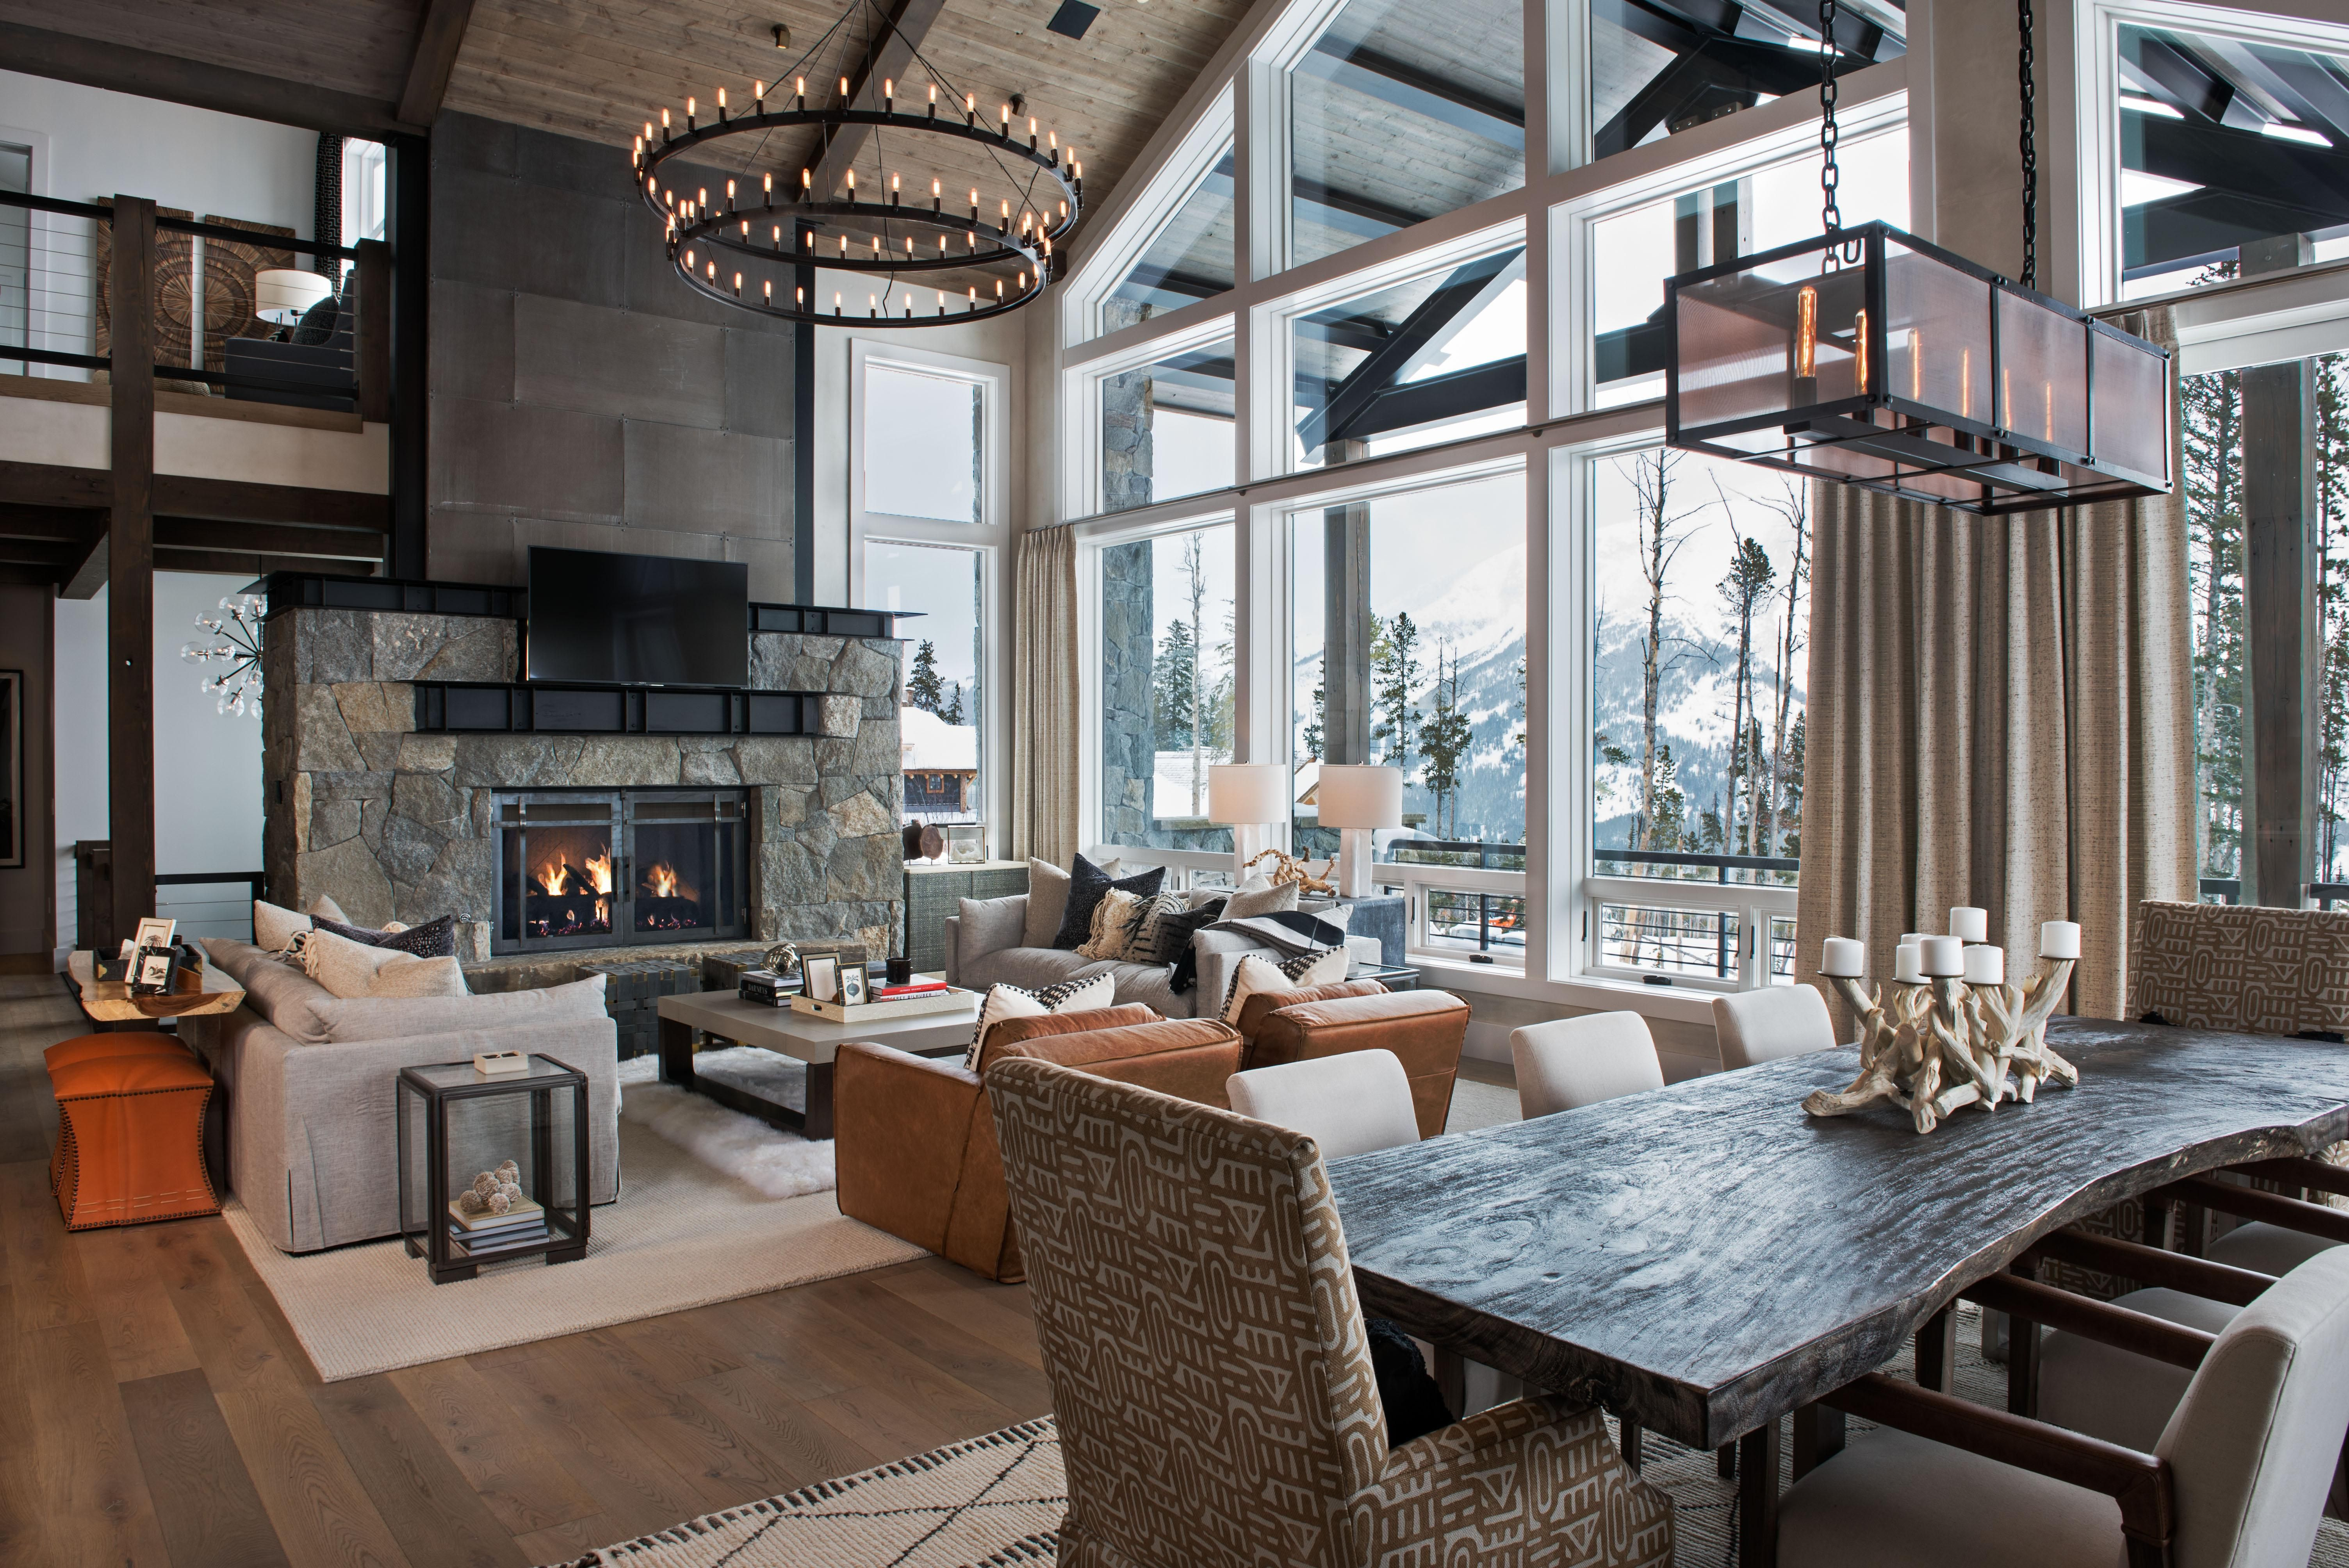 Mountain Modern Living Room In Big Sky Montana At The Yellowstone Club 6016 4016 Oc Http Ift Tt 2uf3k8h Mountain Living Room Modern Mountain Home Home